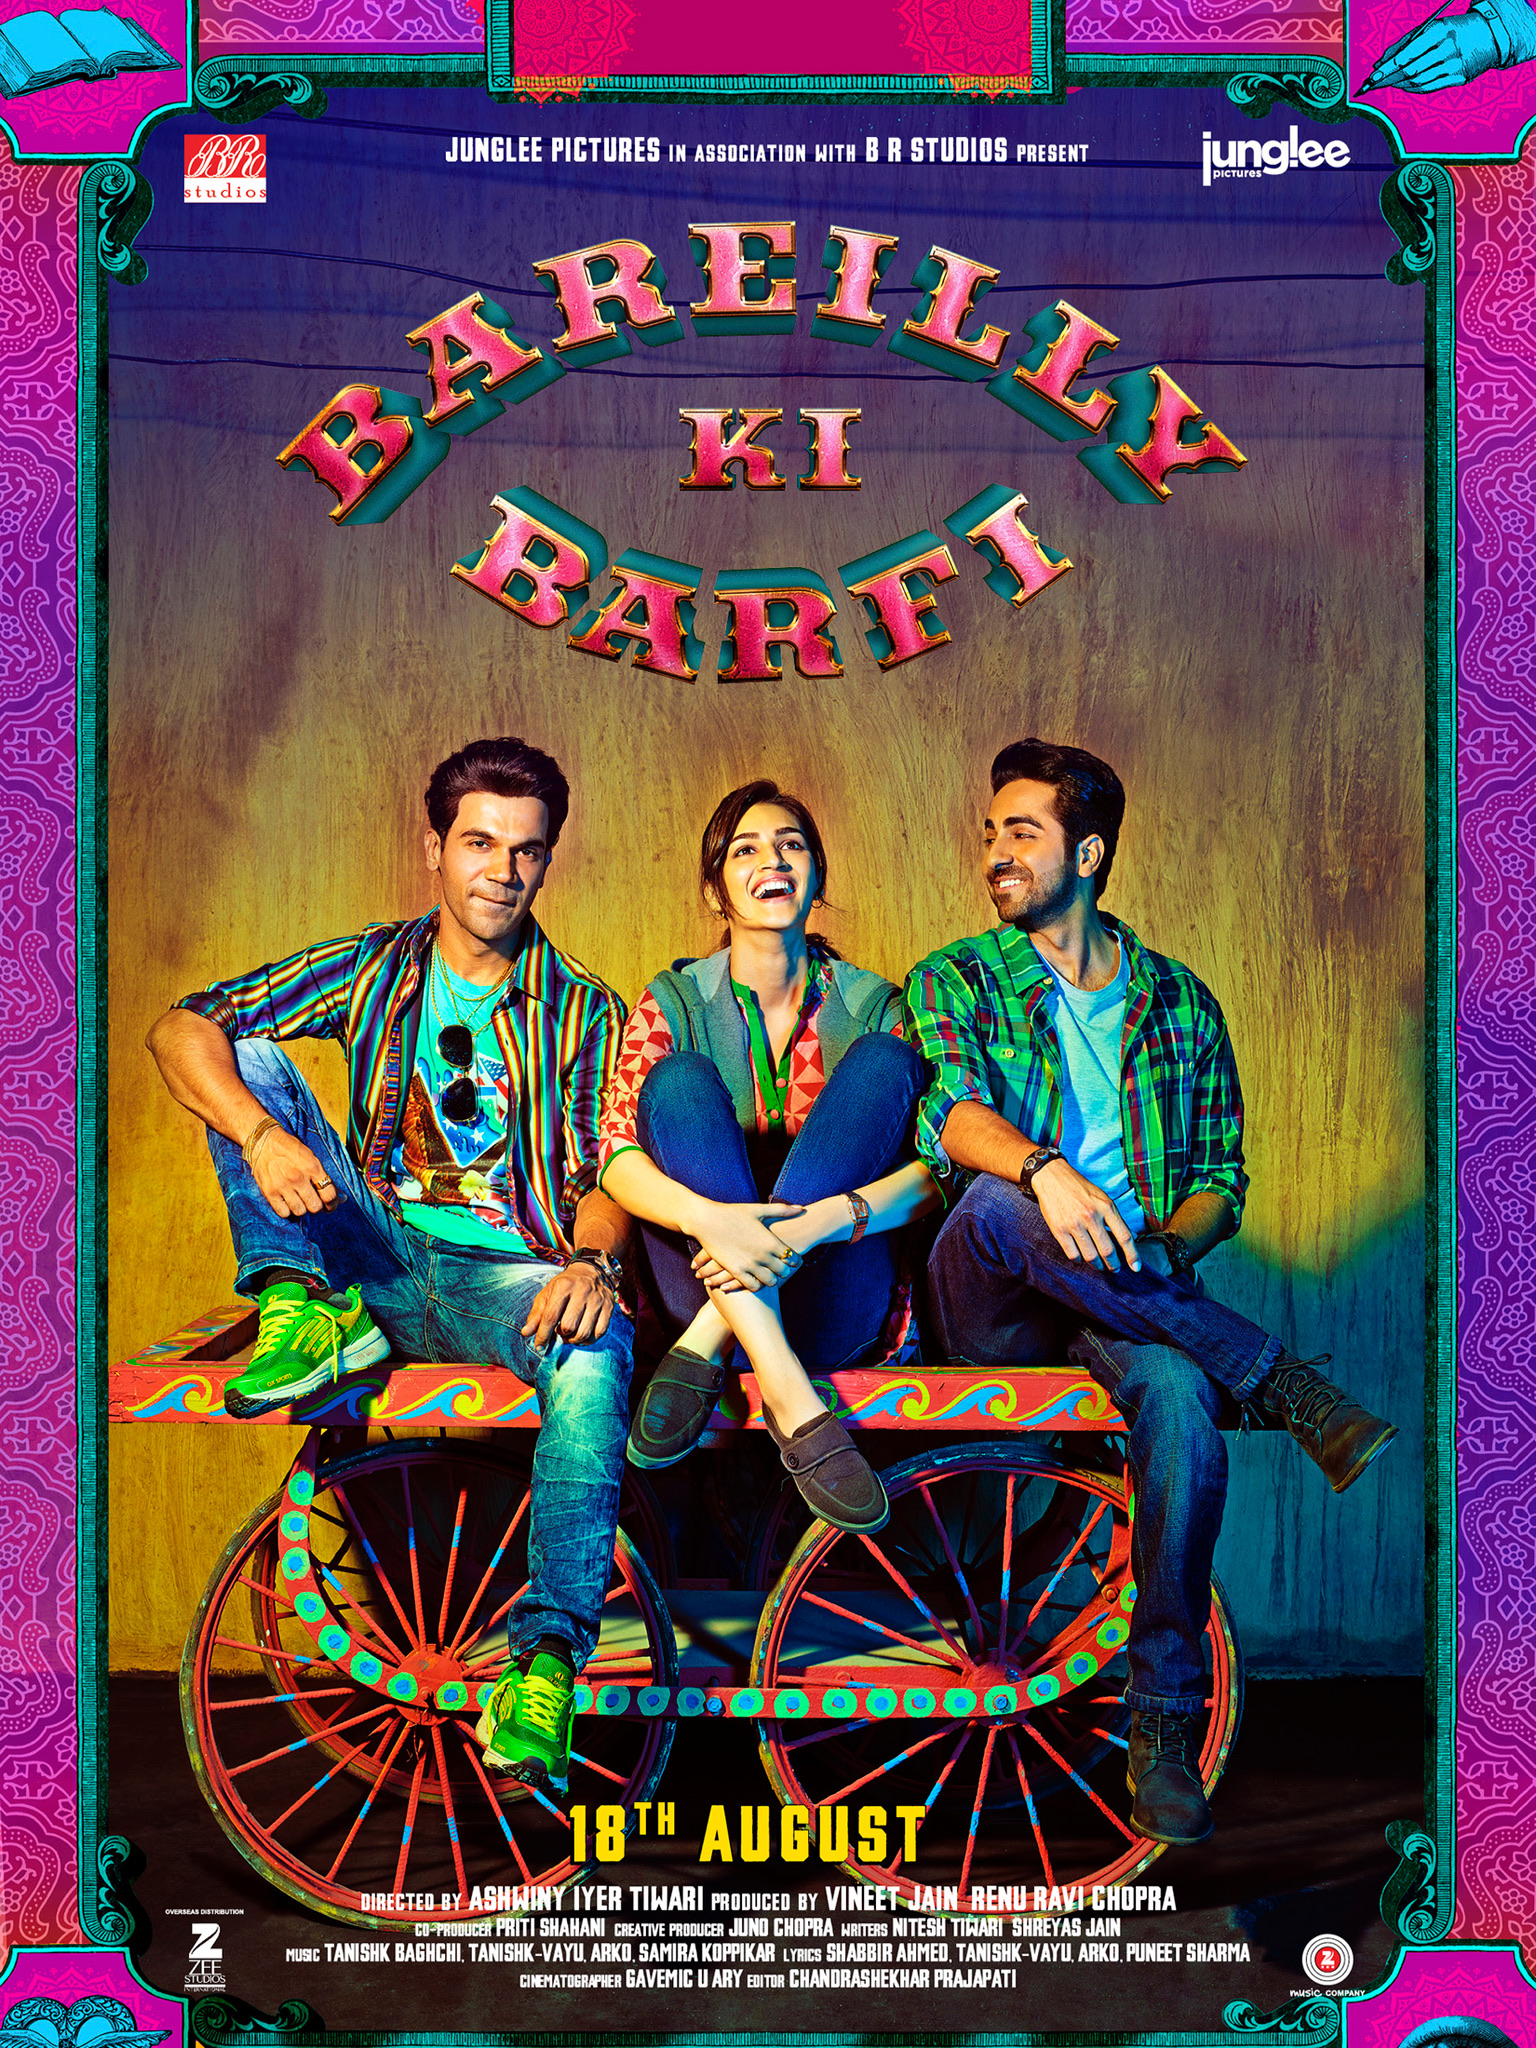 The poster of 'Bareilly Ki Barfi'.